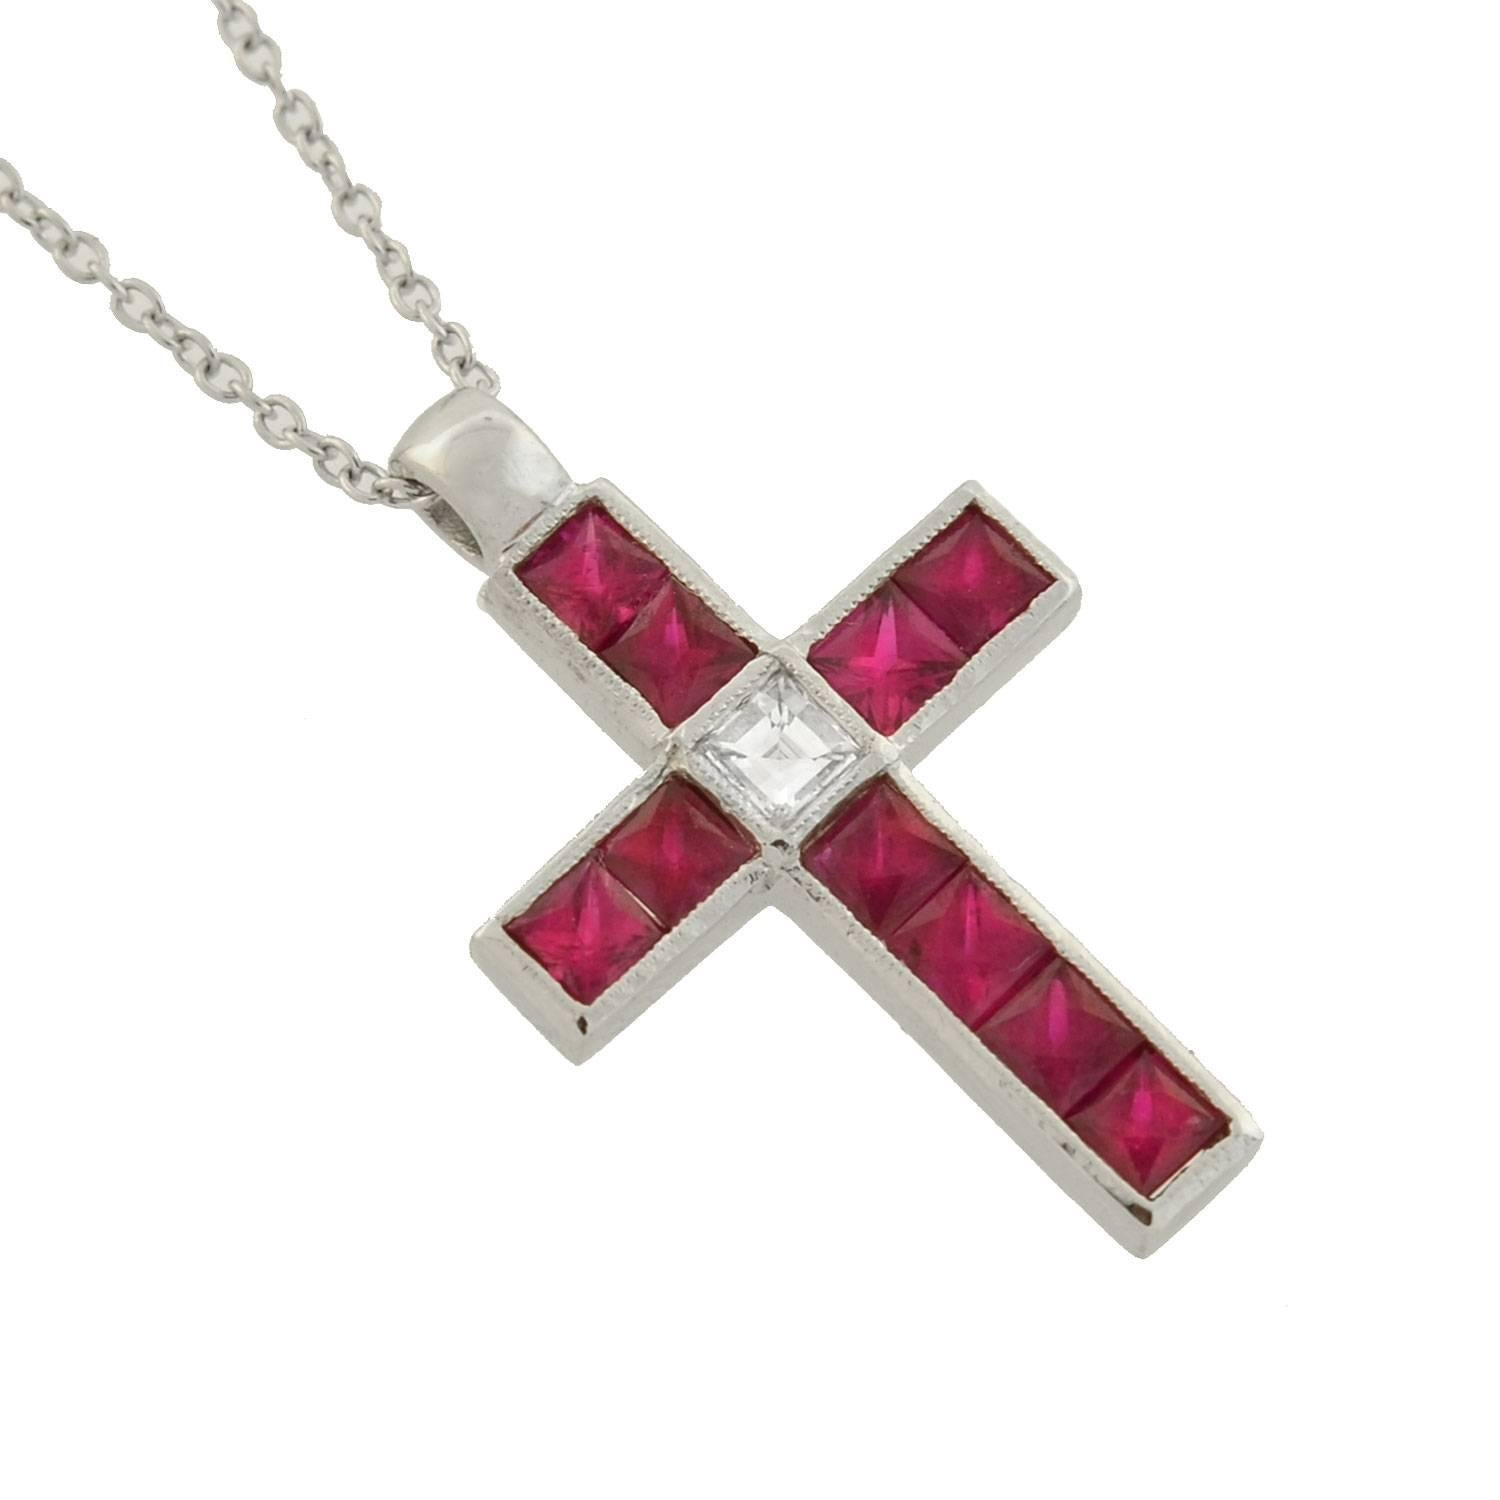 Vintage french cut ruby diamond cross pendant necklace at 1stdibs aloadofball Choice Image